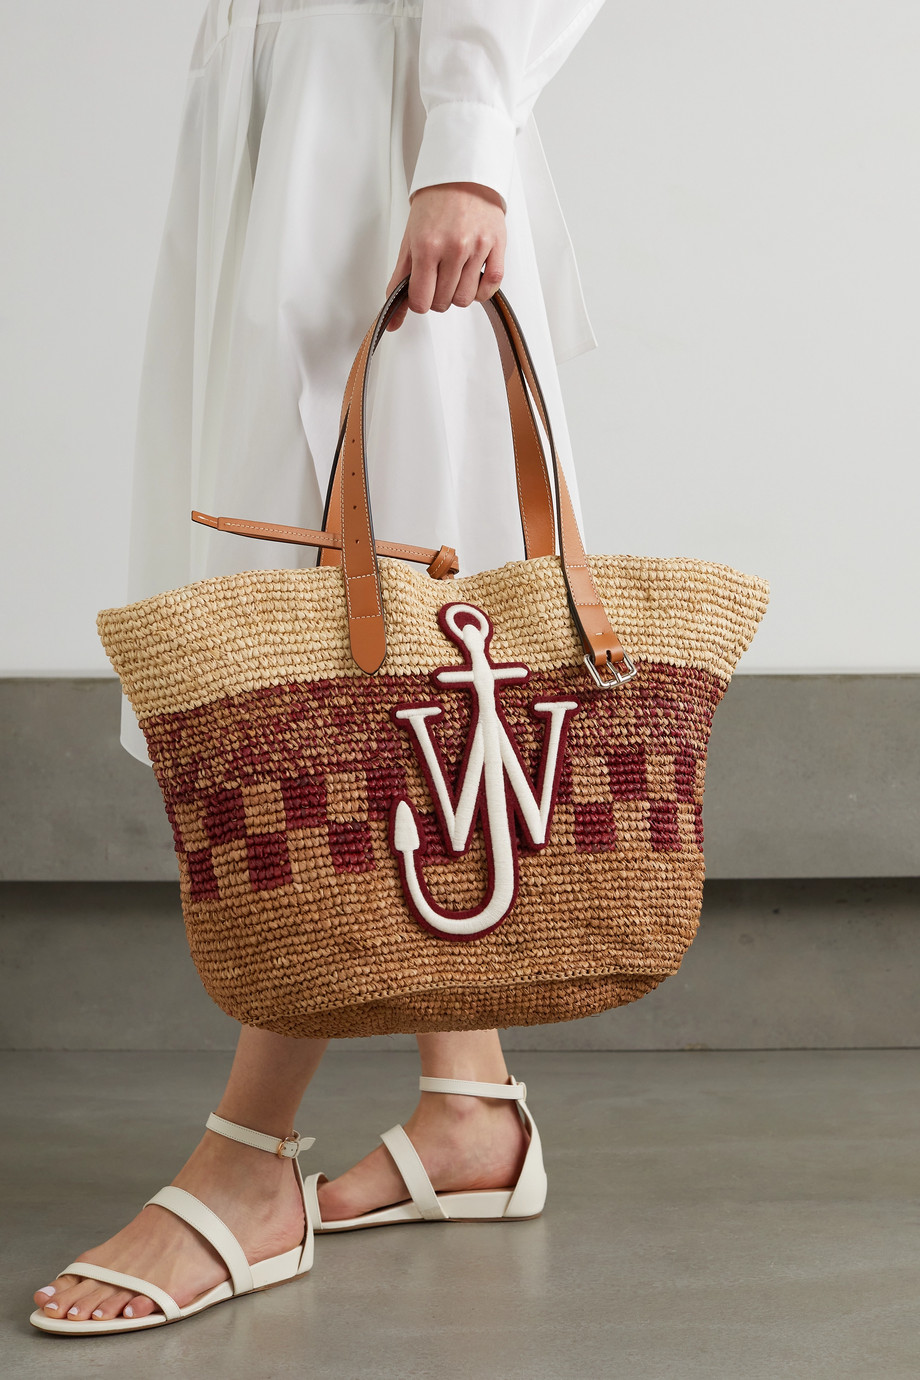 JW Anderson Appliquéd leather-trimmed woven raffia tote